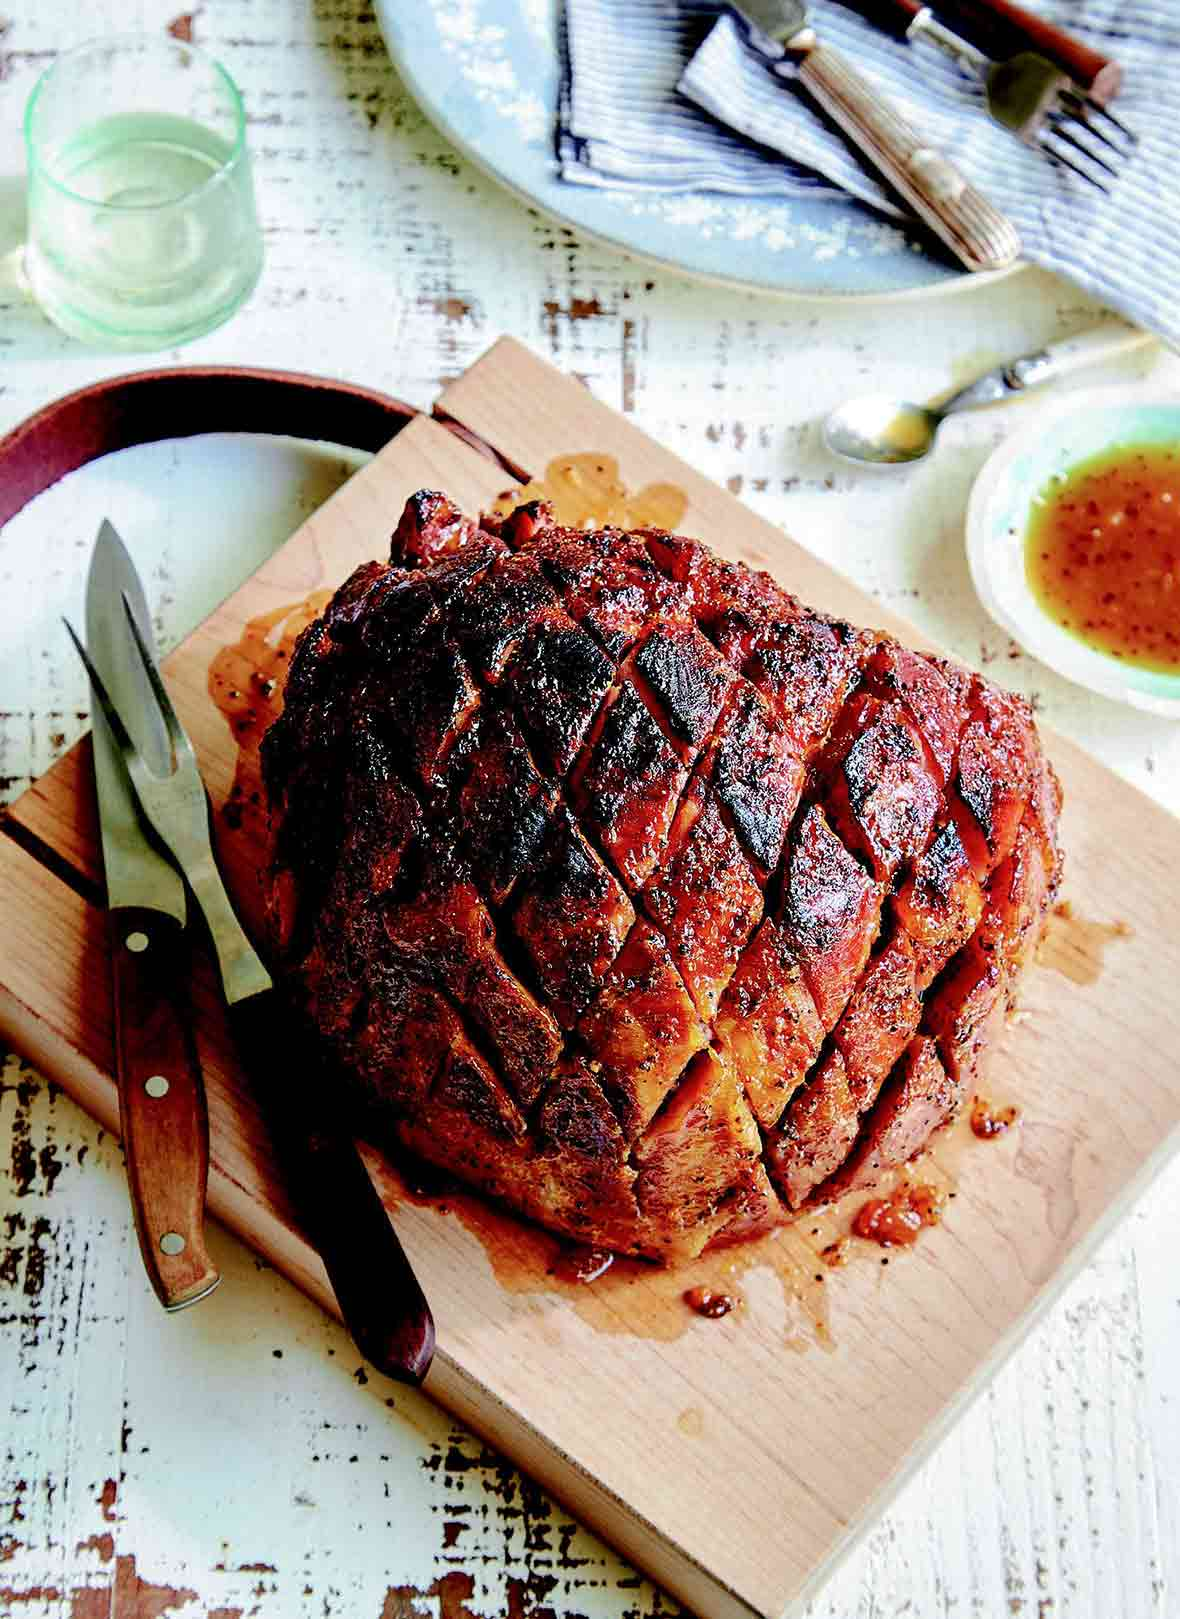 A fully cooked ham with ginger peach glaze on a carving board